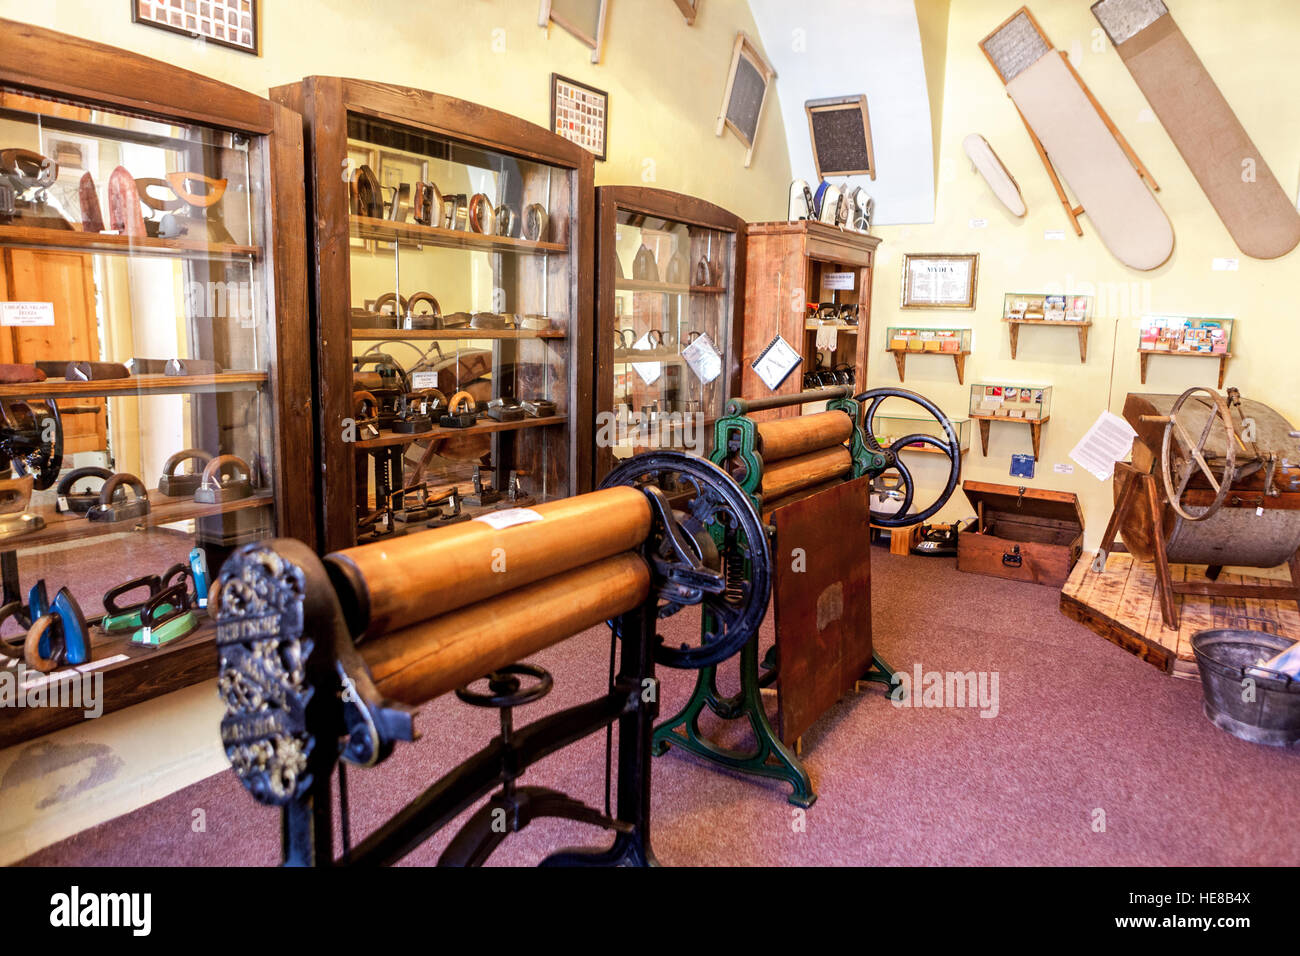 The museum of exhibition about the history of washing and ironing, Czech Republic - Stock Image